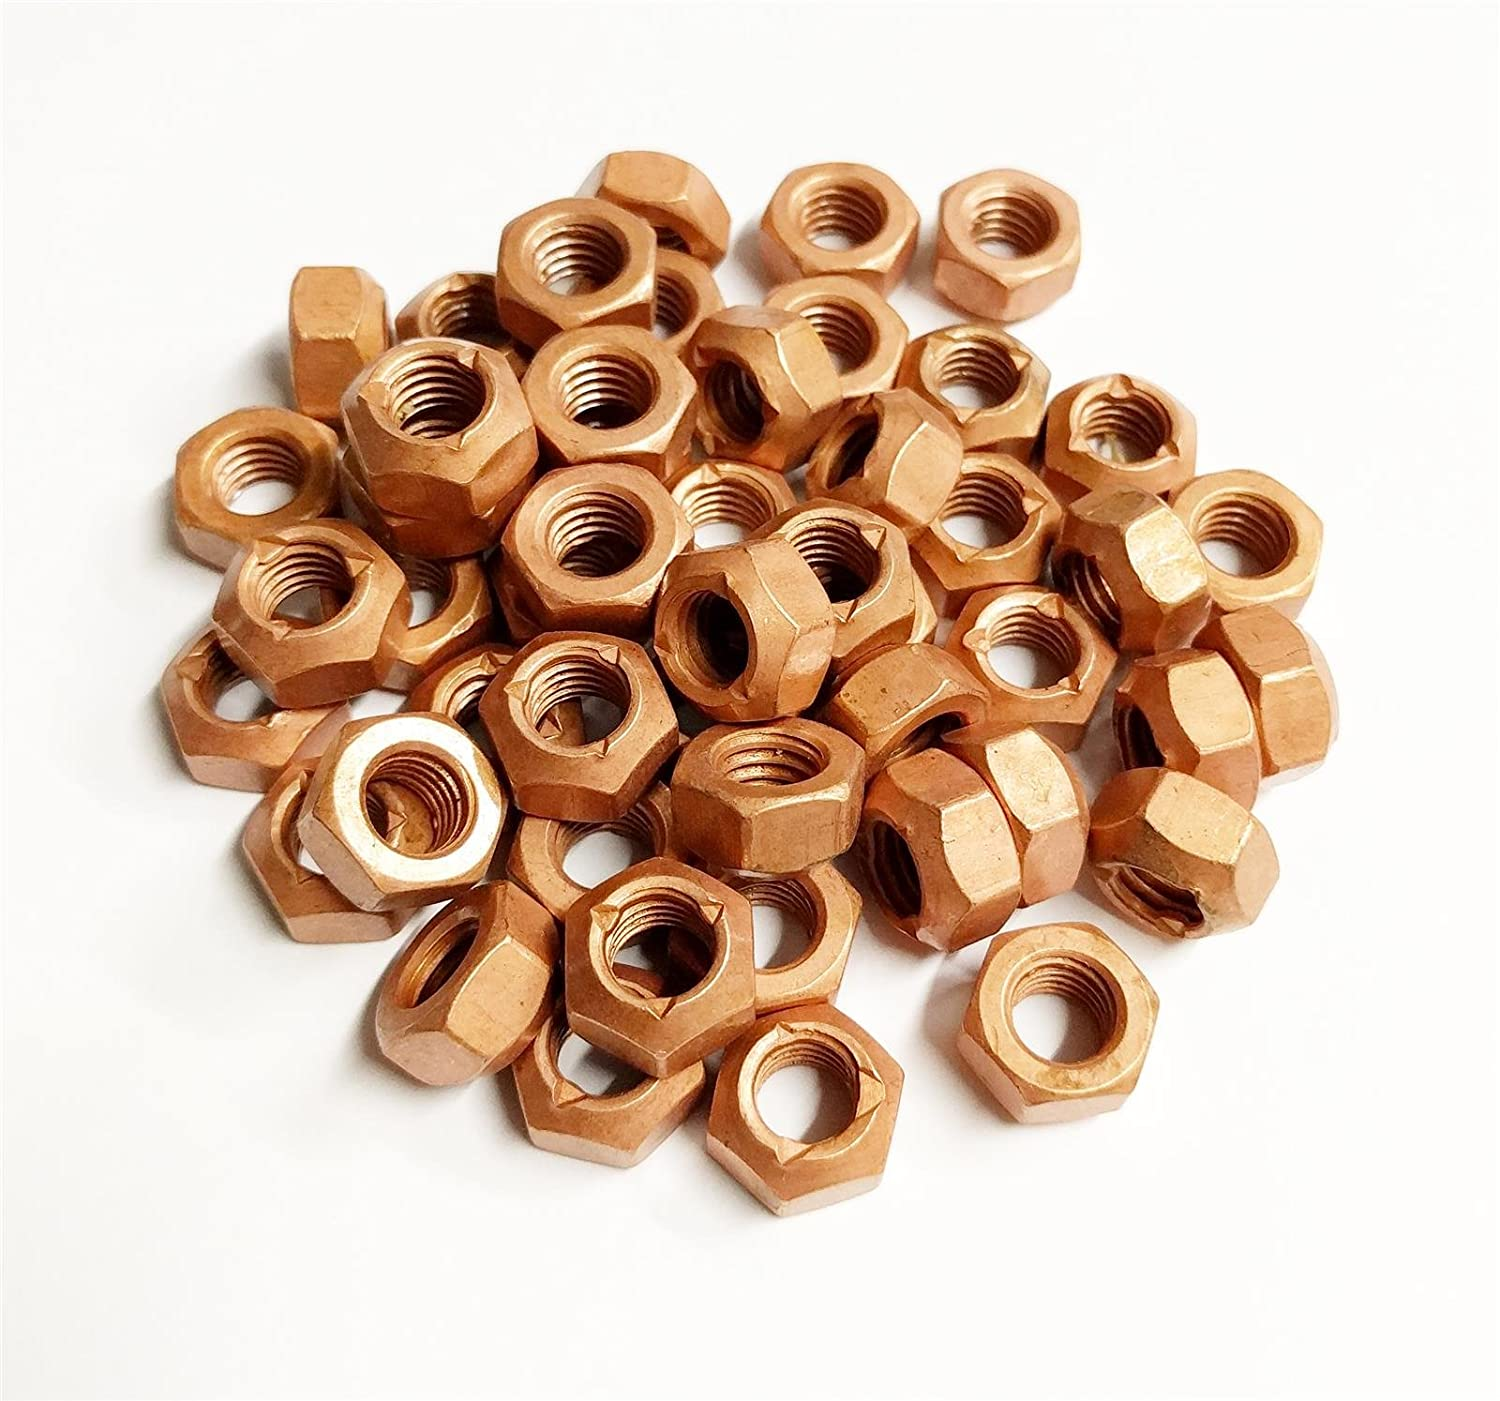 Other 50x M10 Copper Flashed Exhaust Manifold 10mm Nut - High Temperature Nuts AutoPower